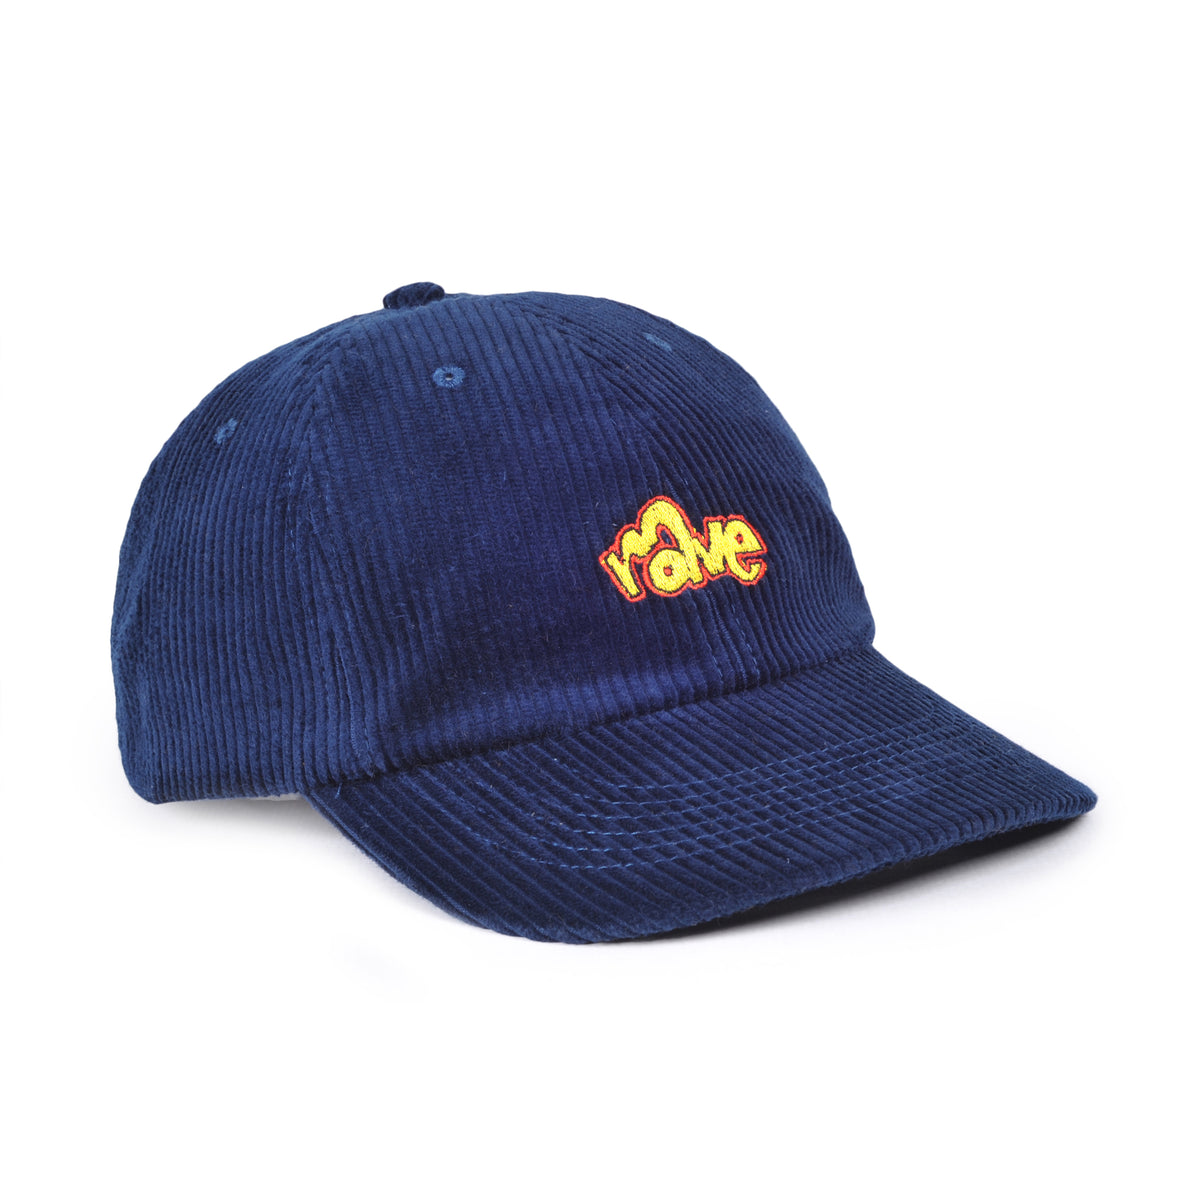 SPIKE cap cord navy - RAVE skateboards